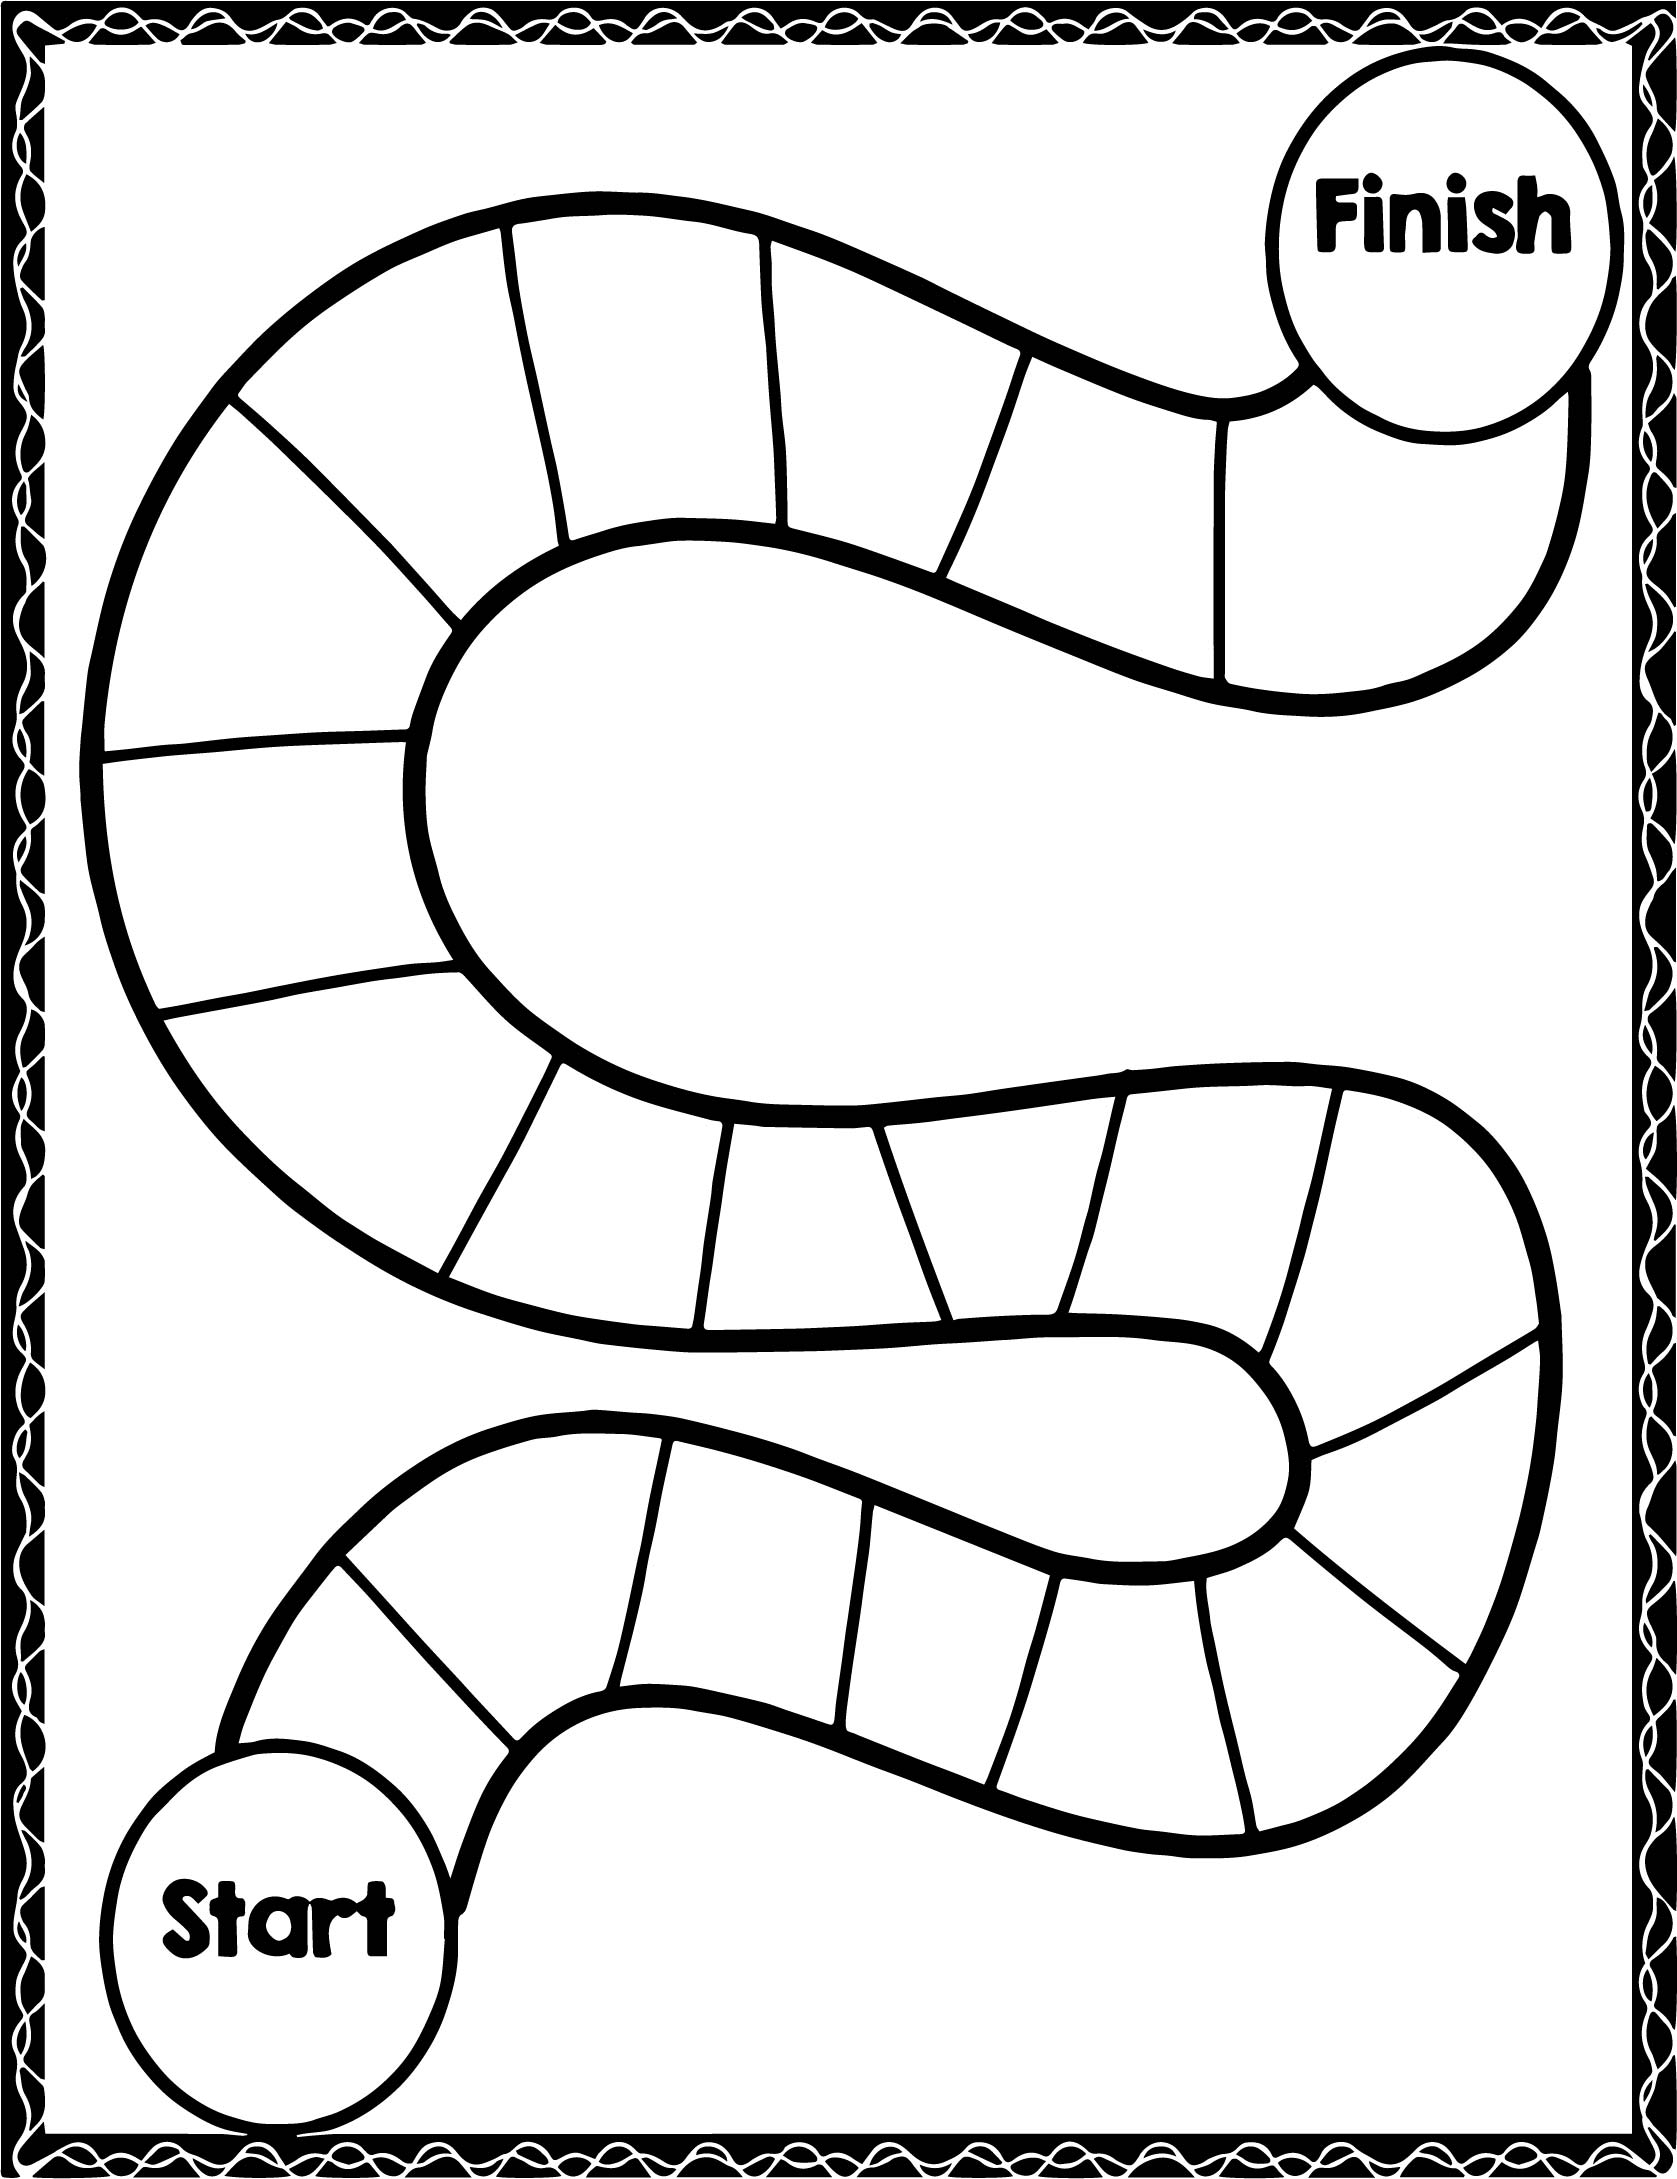 Board Start Finish Picture Coloring Page